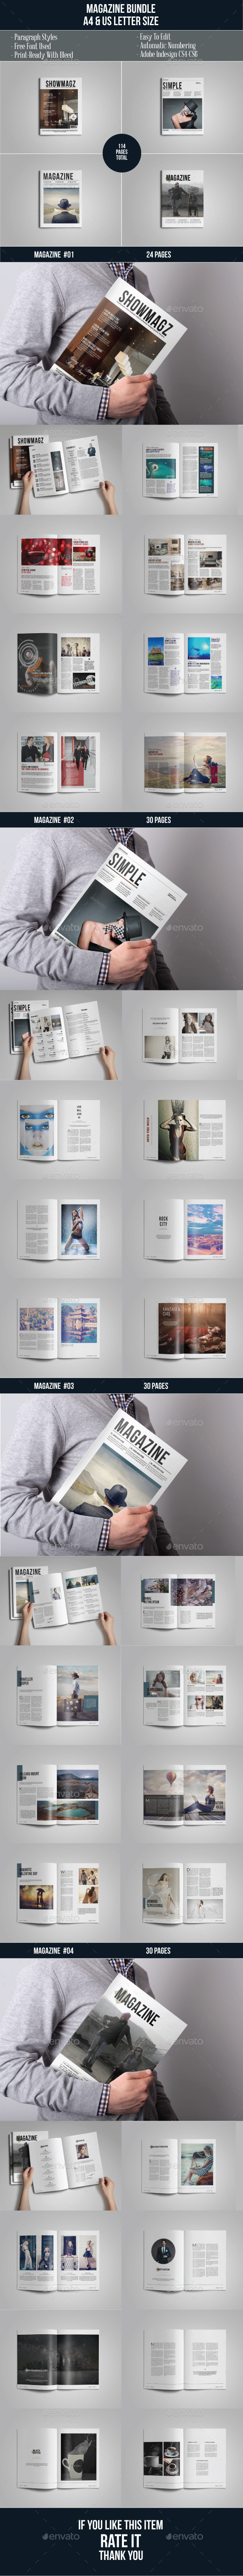 Multipurpose Magazine Bundle Vol 01